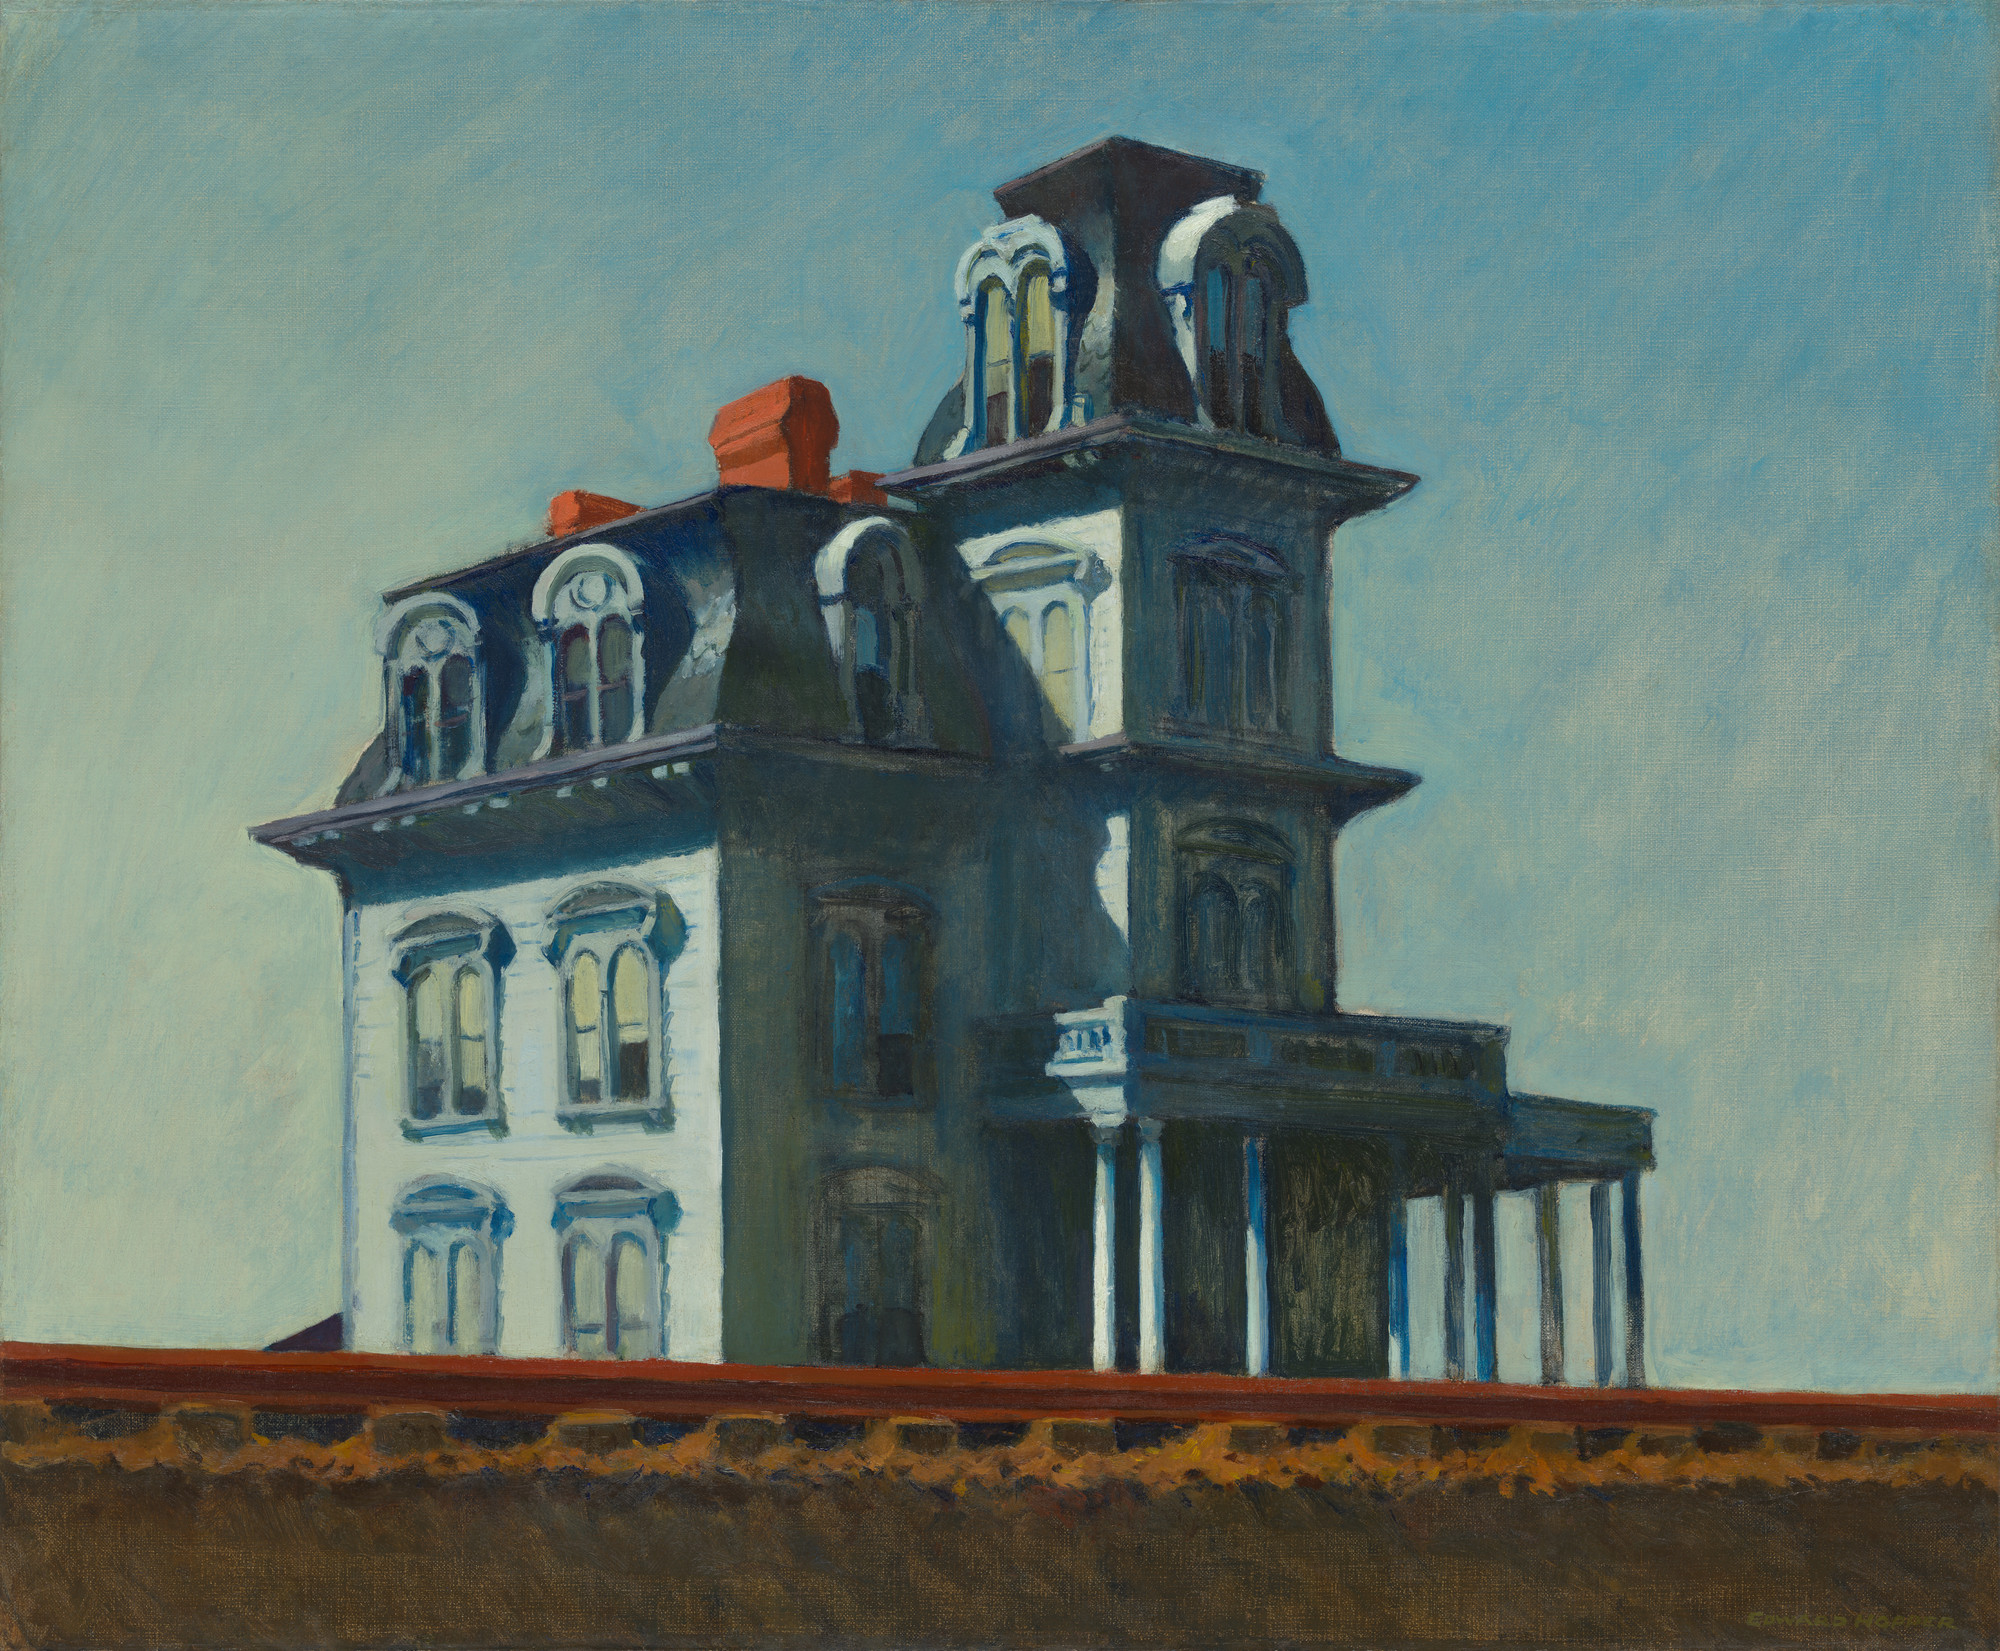 Edward Hopper. House by the Railroad. 1925